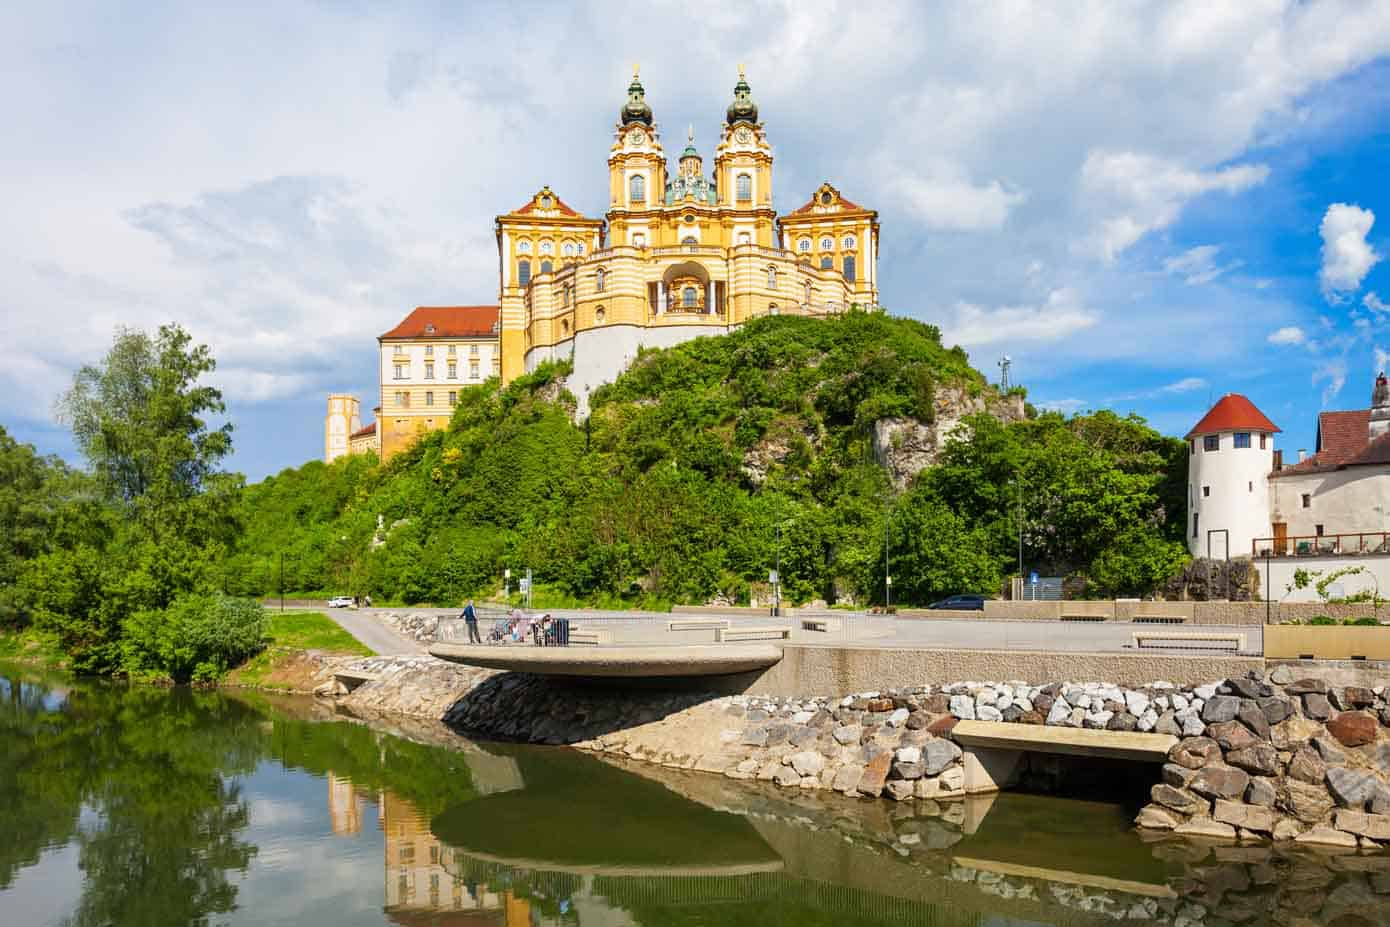 Melk Abbey Monastery on a rocky outcrop overlooking the Danube River on a sunny day.